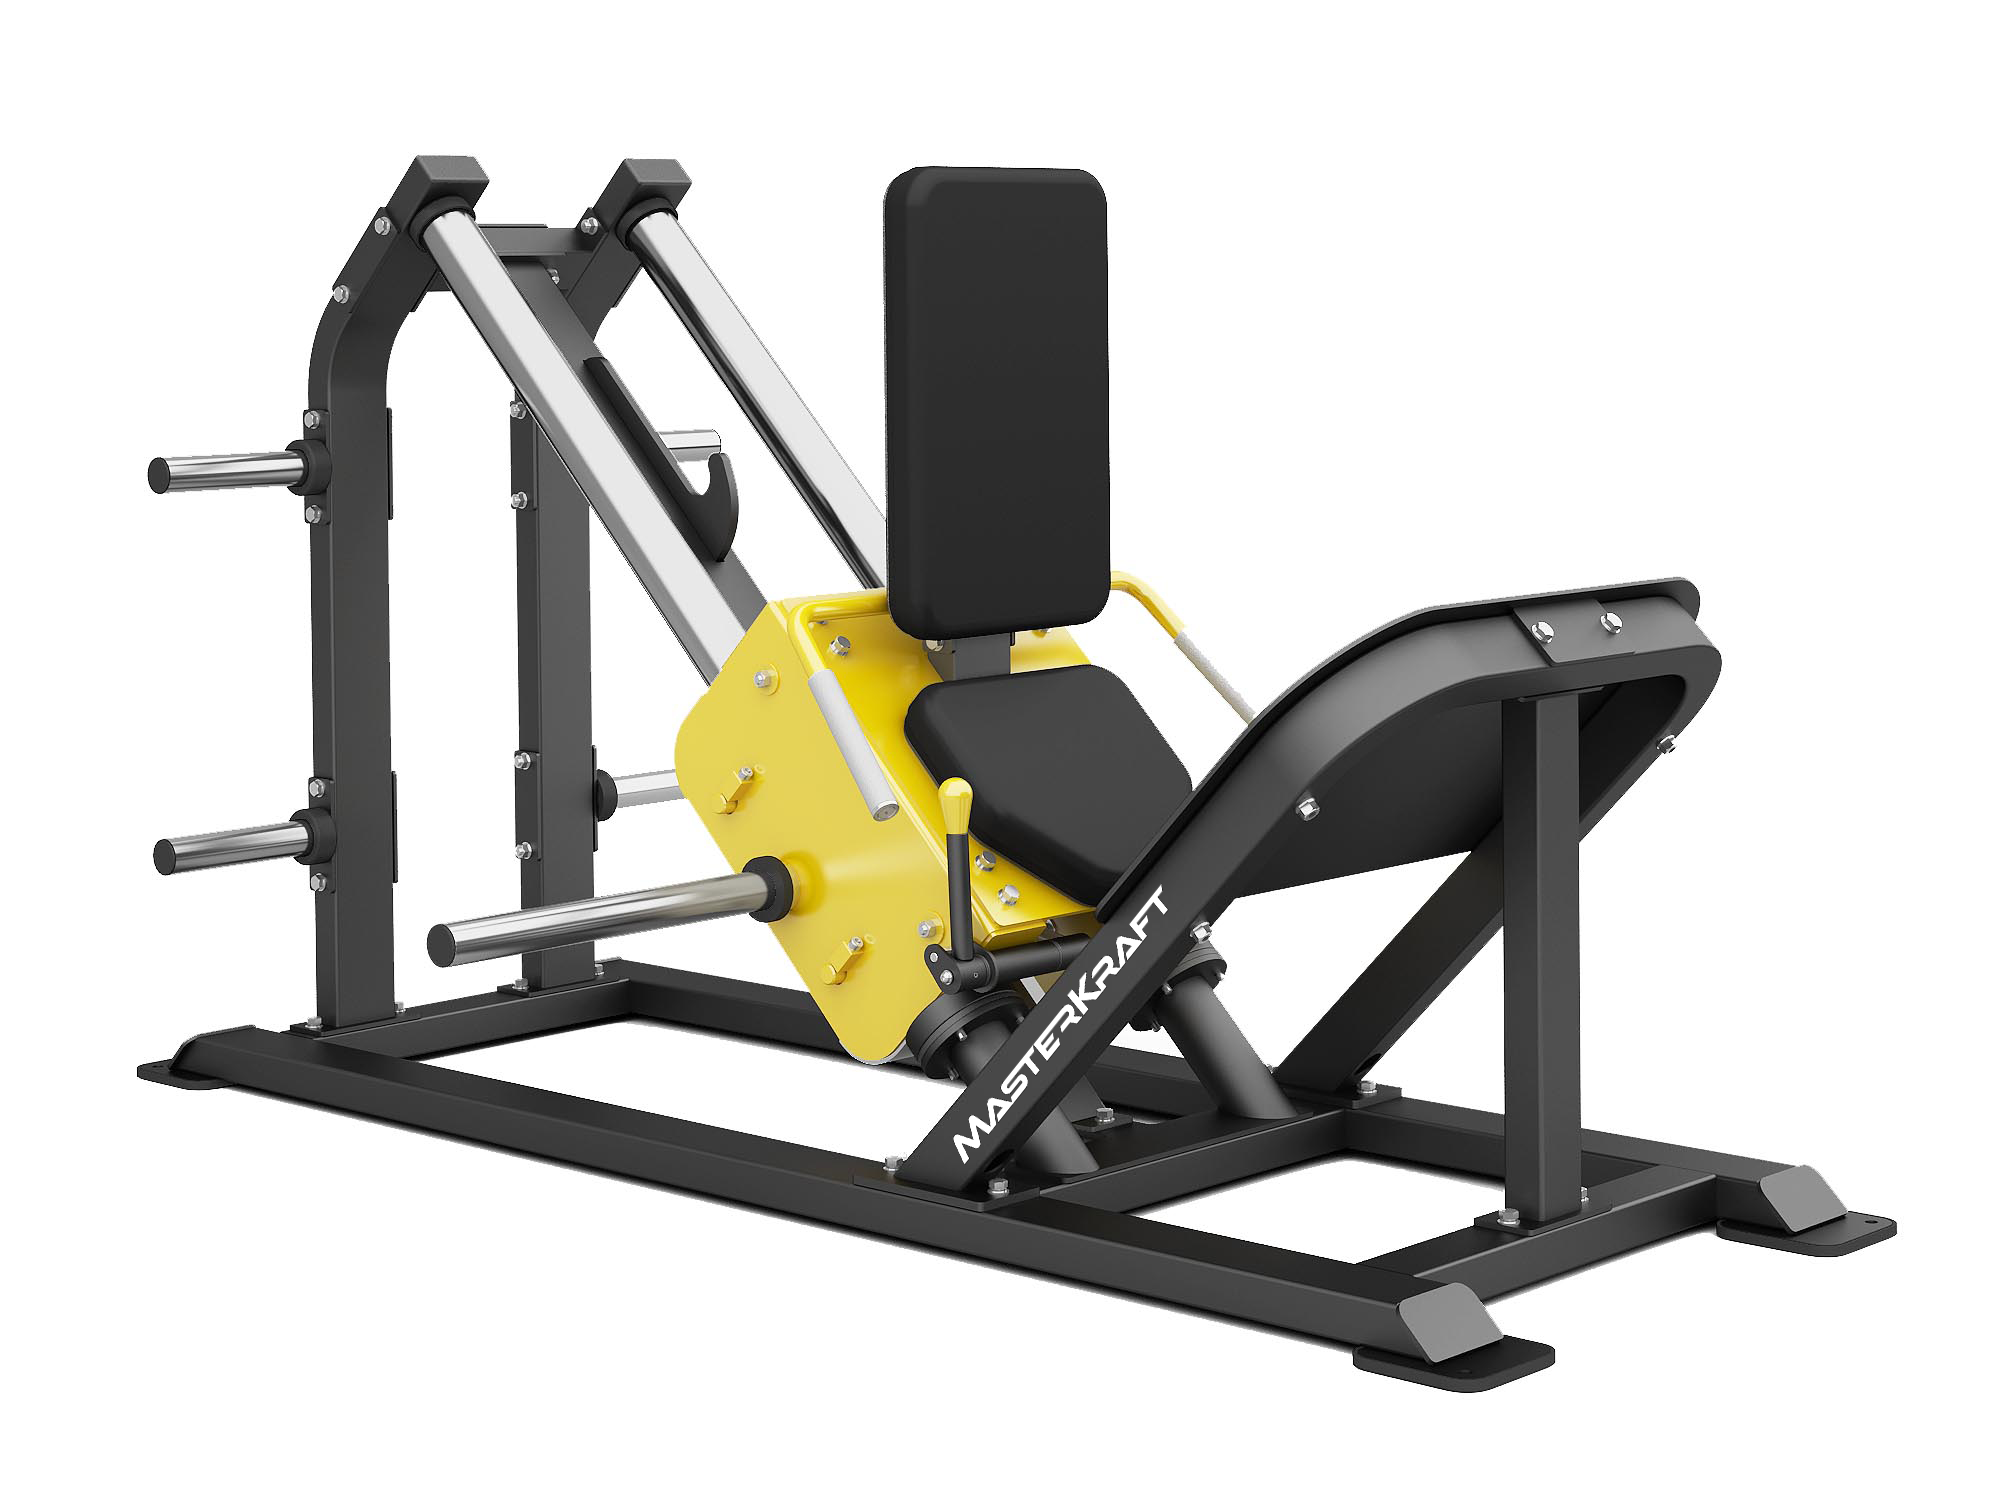 MasterKraft Premier Leg Press & Hack Squat Machine